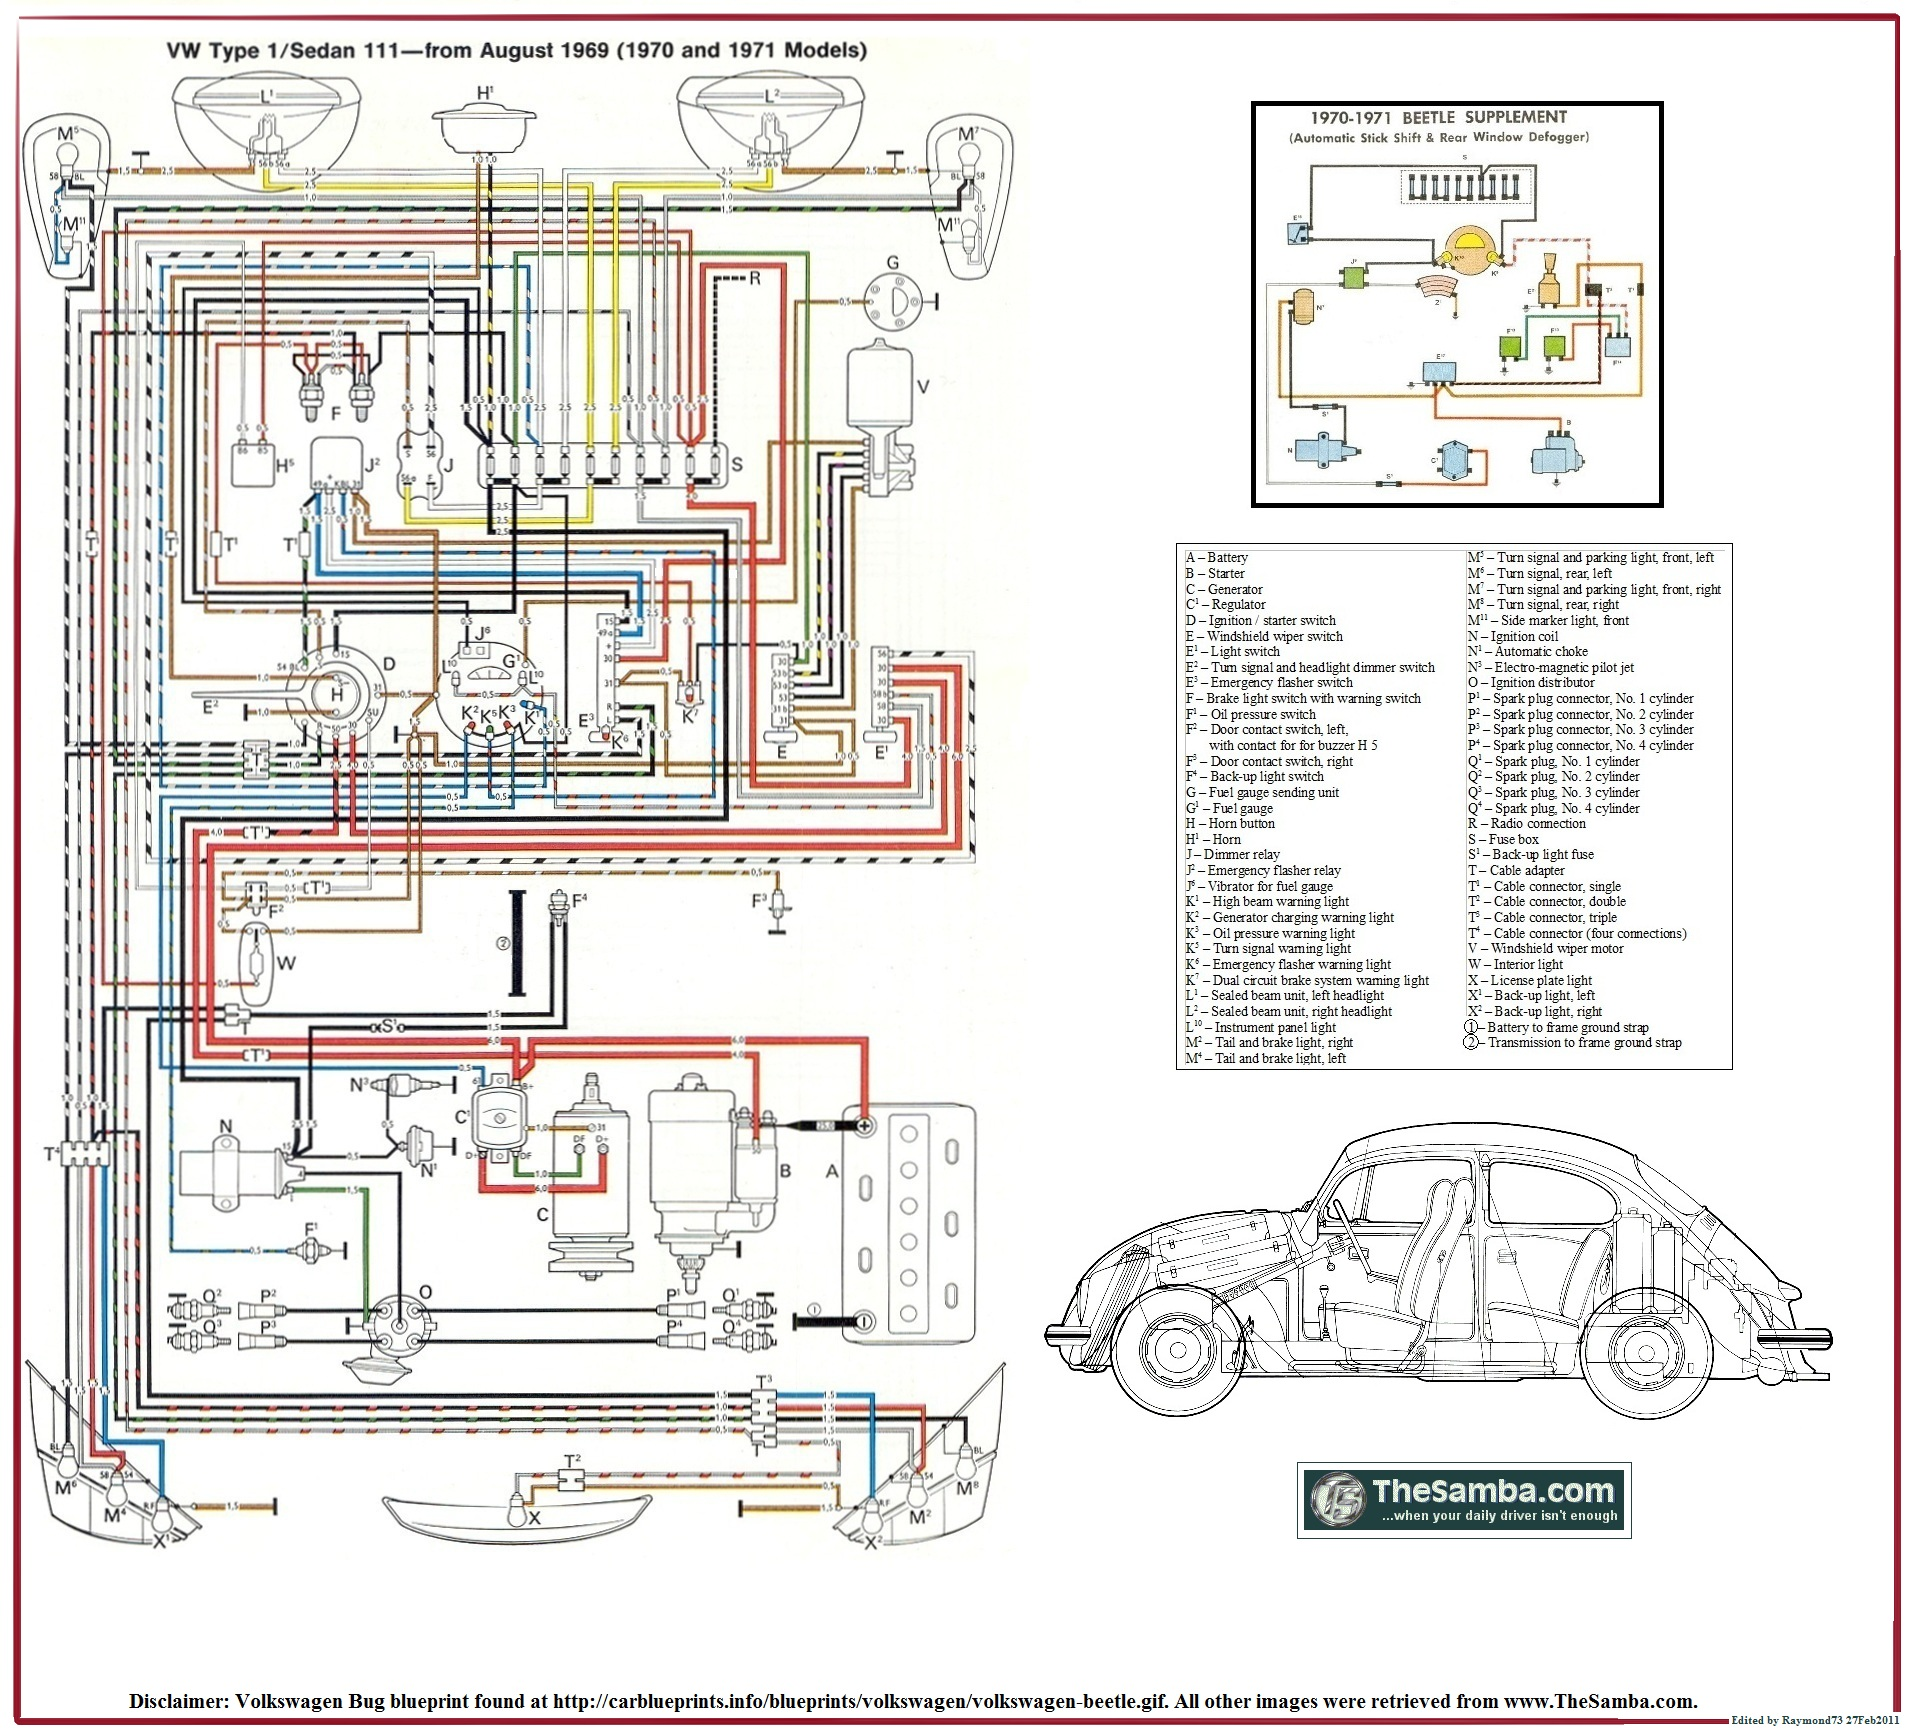 1970_VW_Type_1_Poster thesamba com beetle late model super 1968 up view topic vw bug wiring diagram at creativeand.co